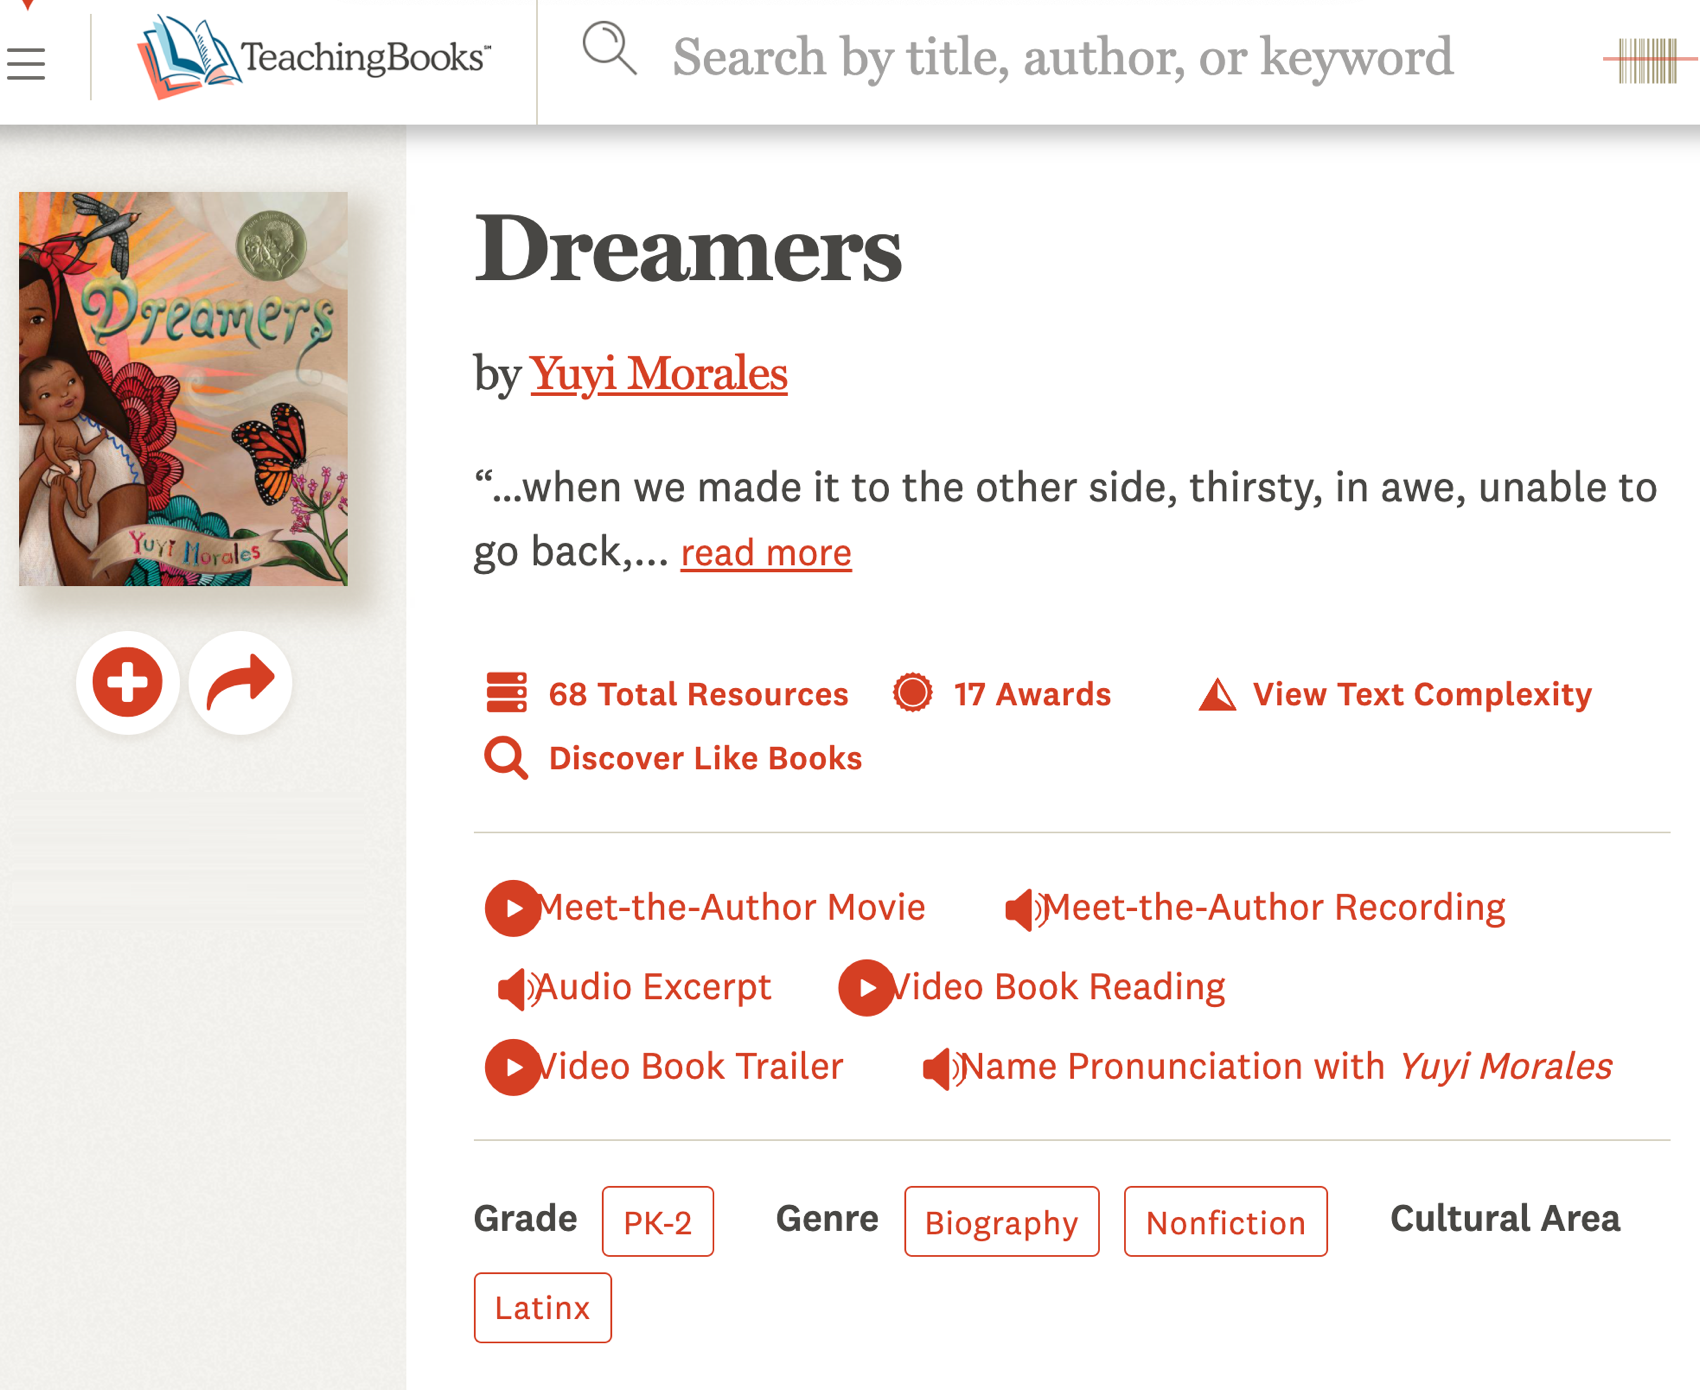 entry in TeachingBooks.net for Dreamers by Yuyi Morales